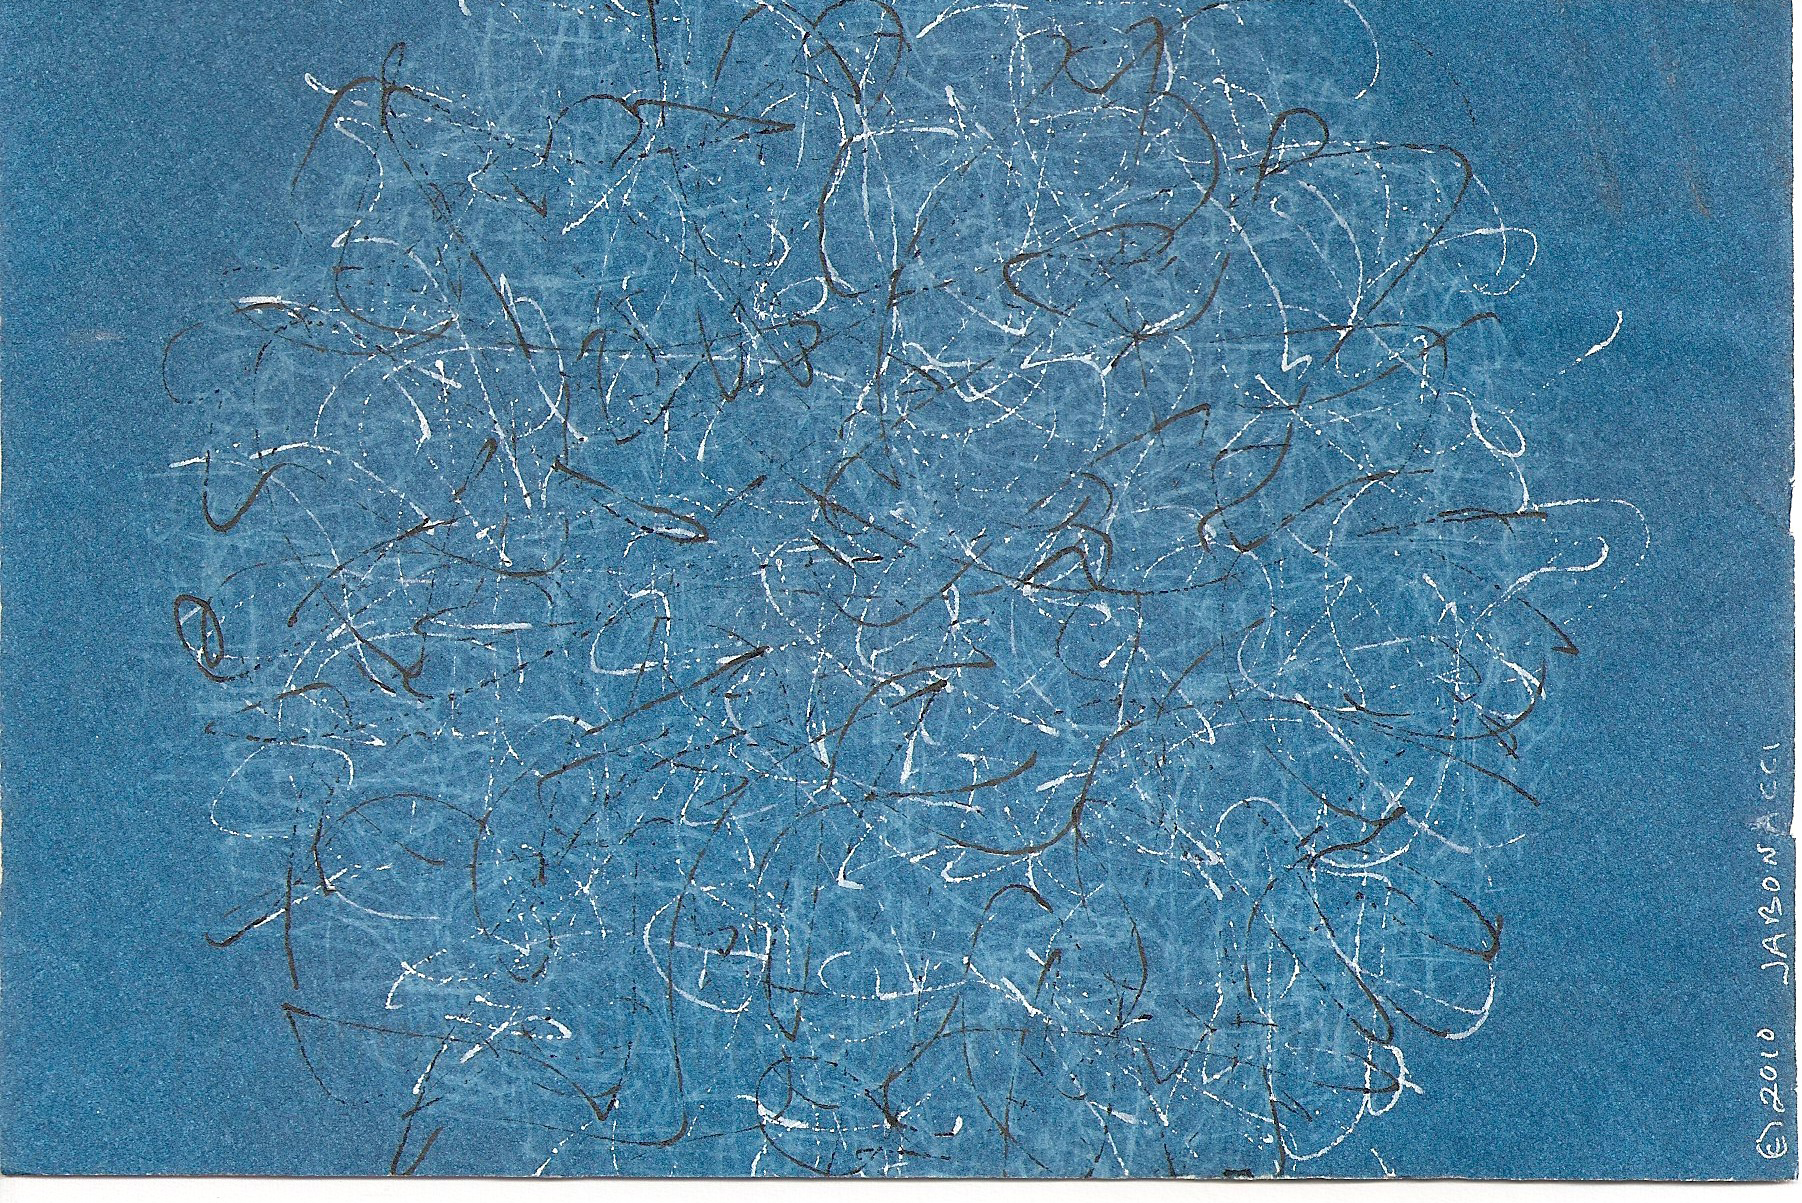 Cyanotypes , 2010, solar prints, pen and ink on watercolor paper